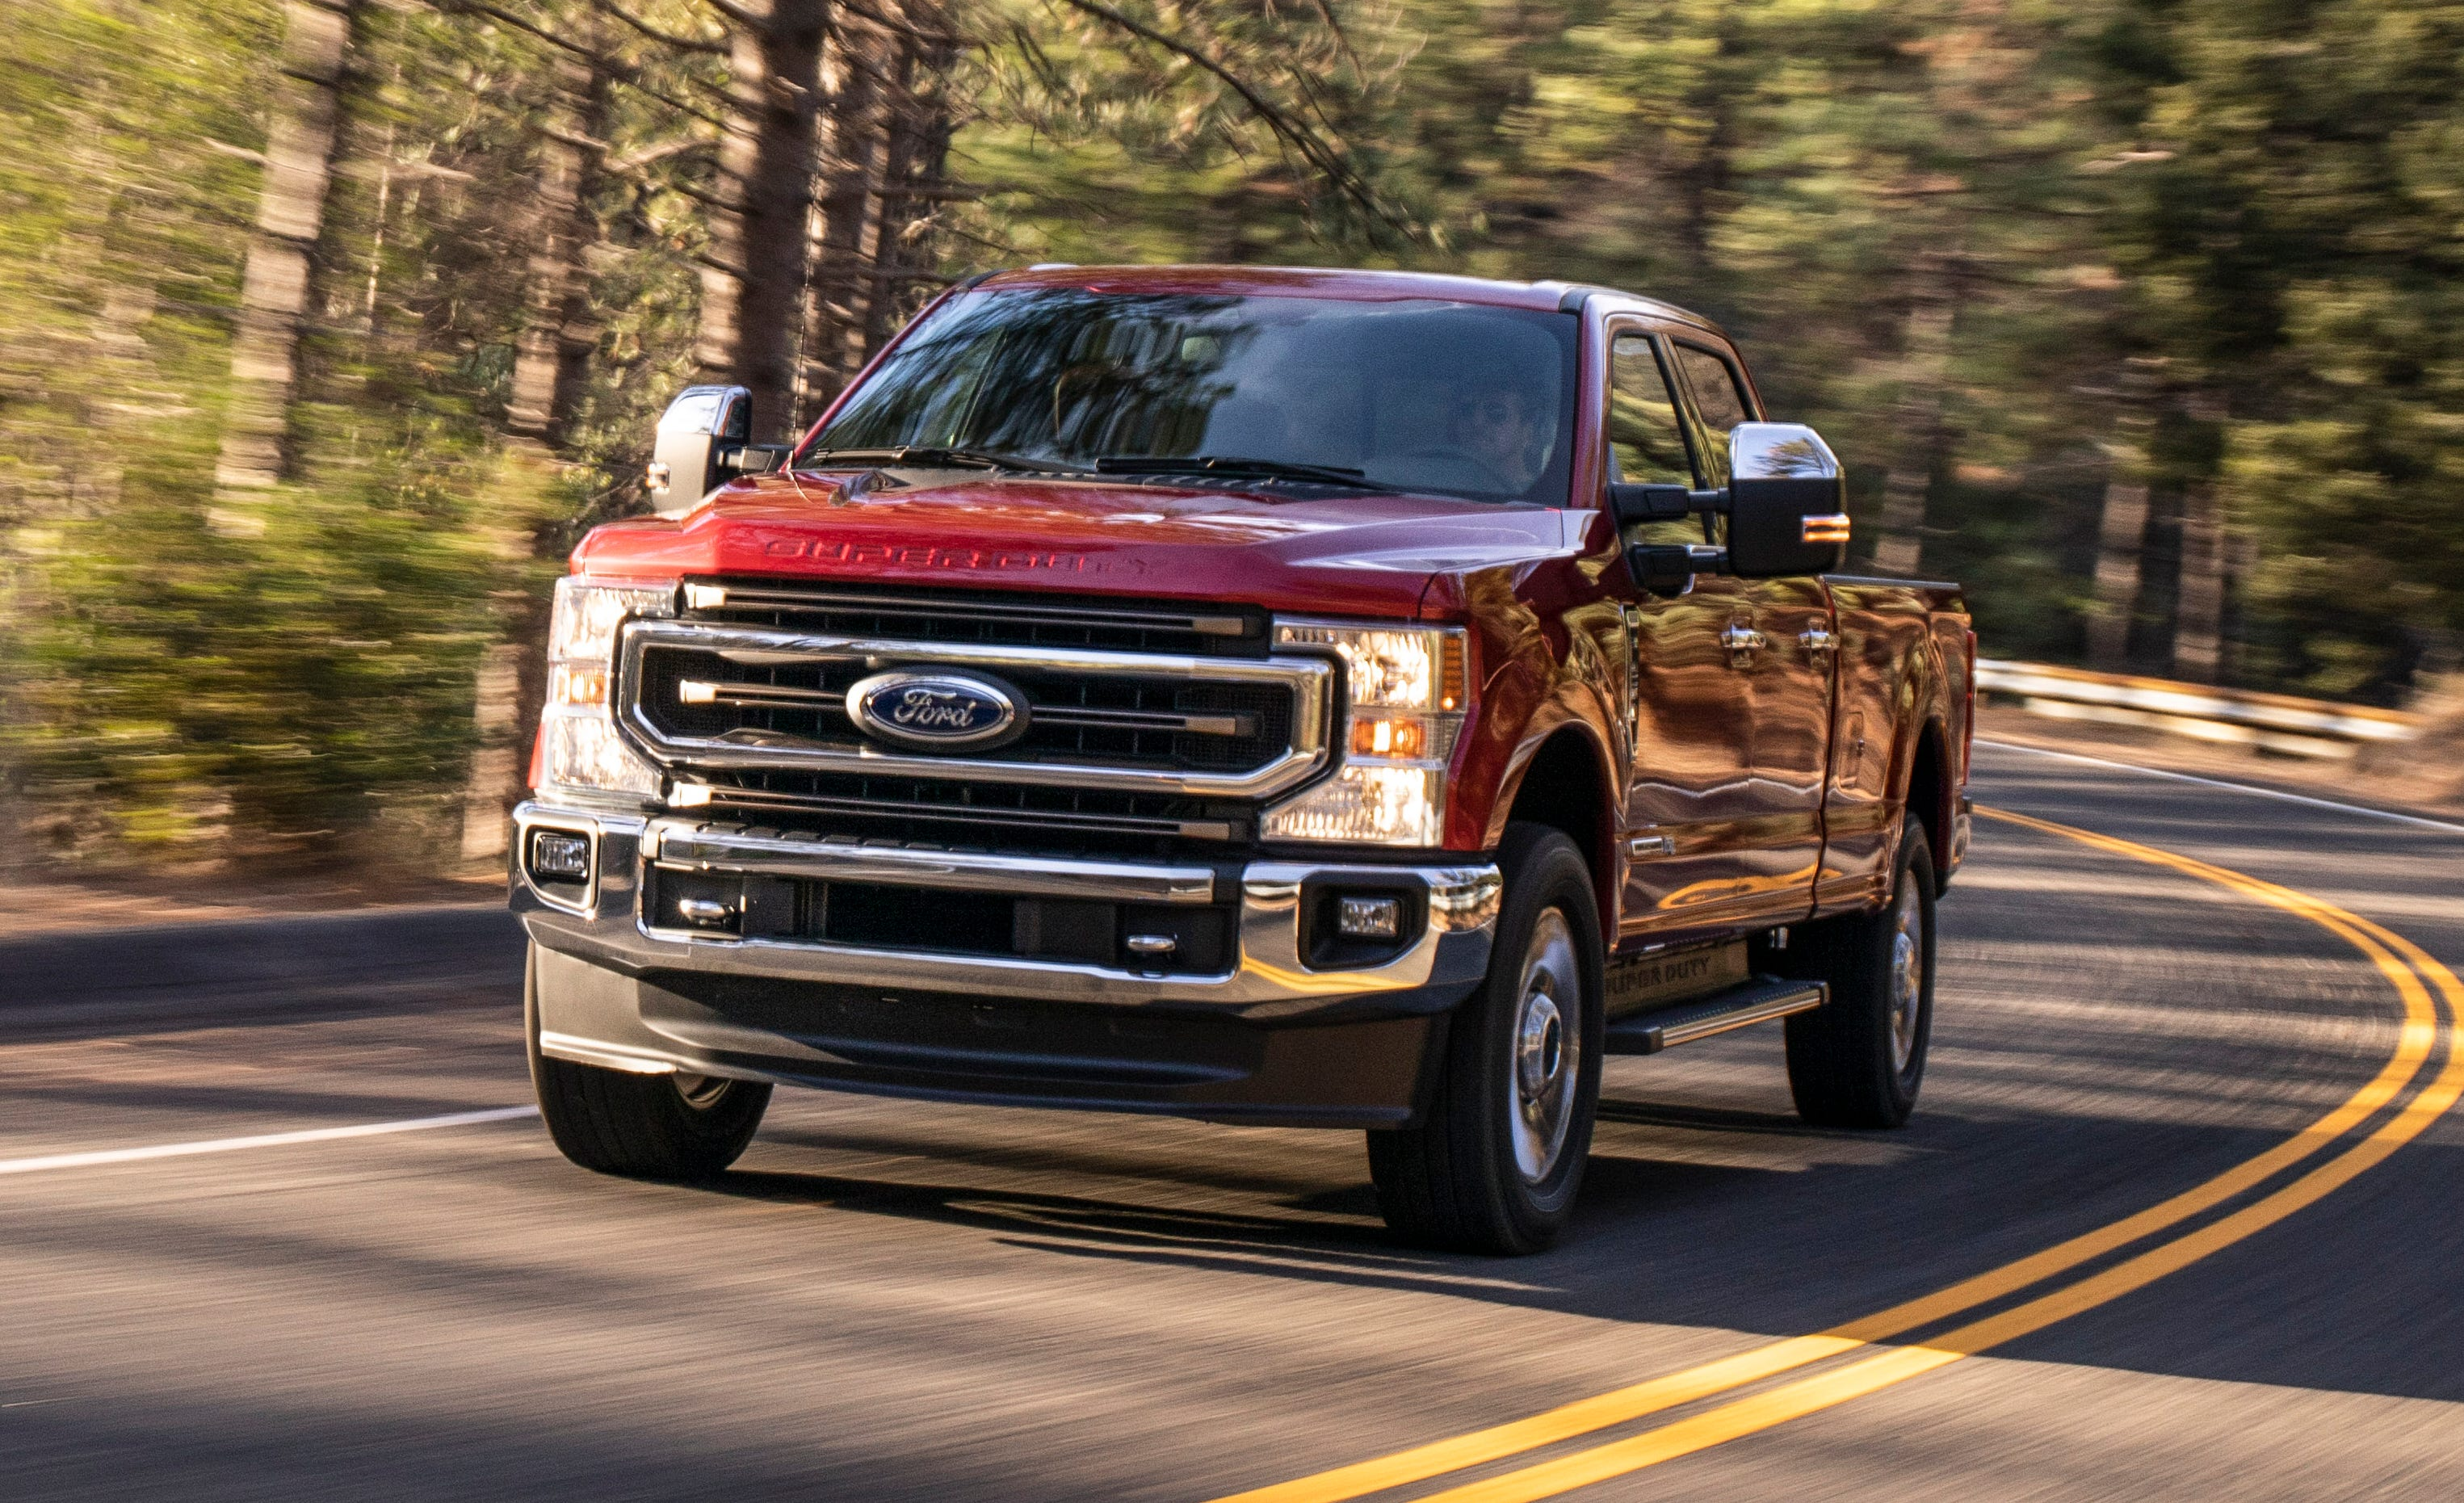 2020 Ford F-250 King Ranch Super Duty